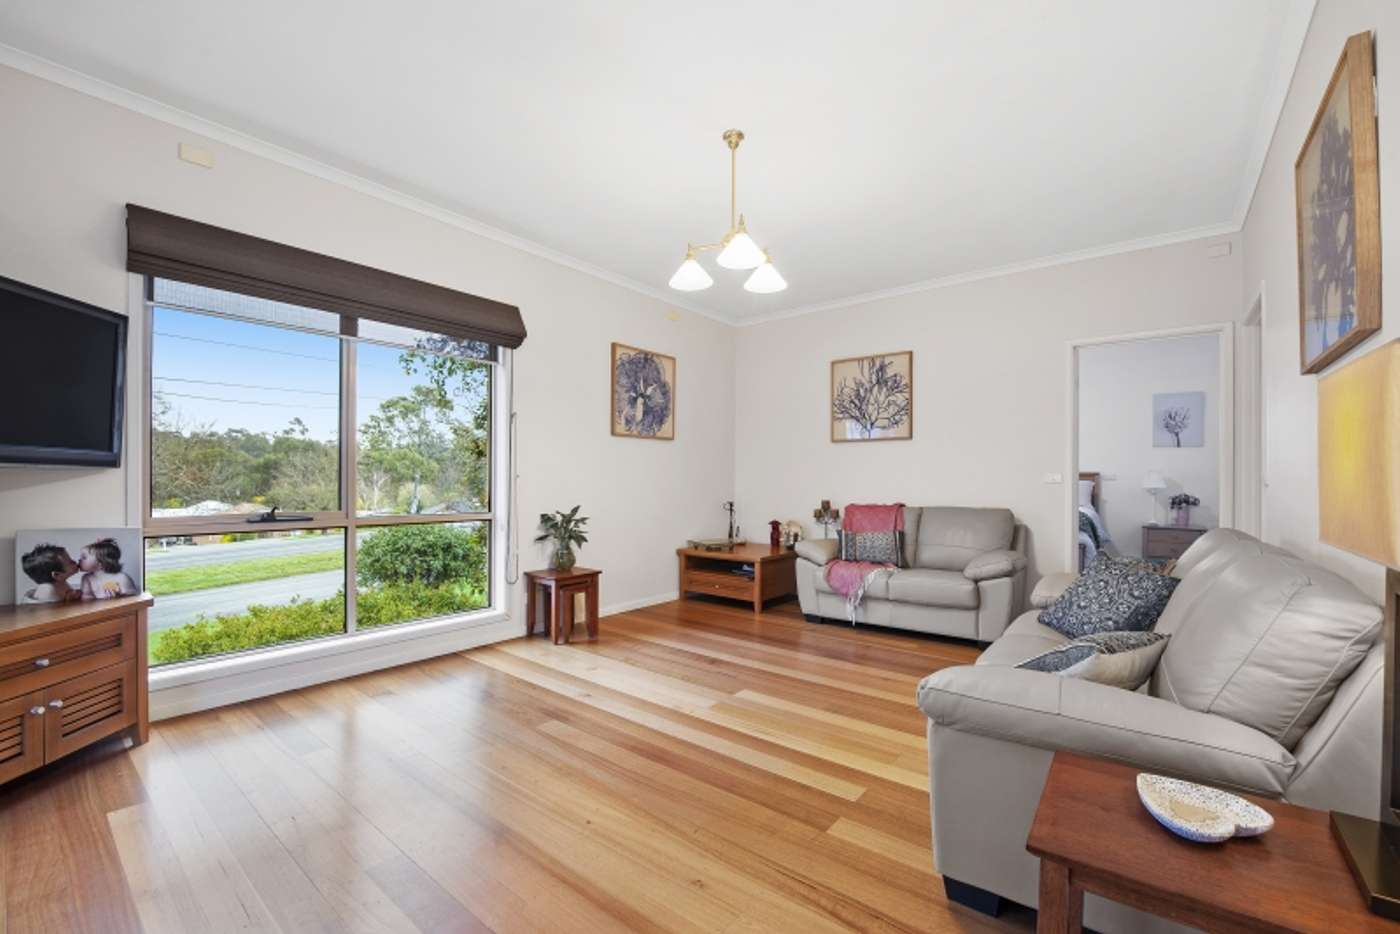 Sixth view of Homely house listing, 605 Learmonth, Buninyong VIC 3357